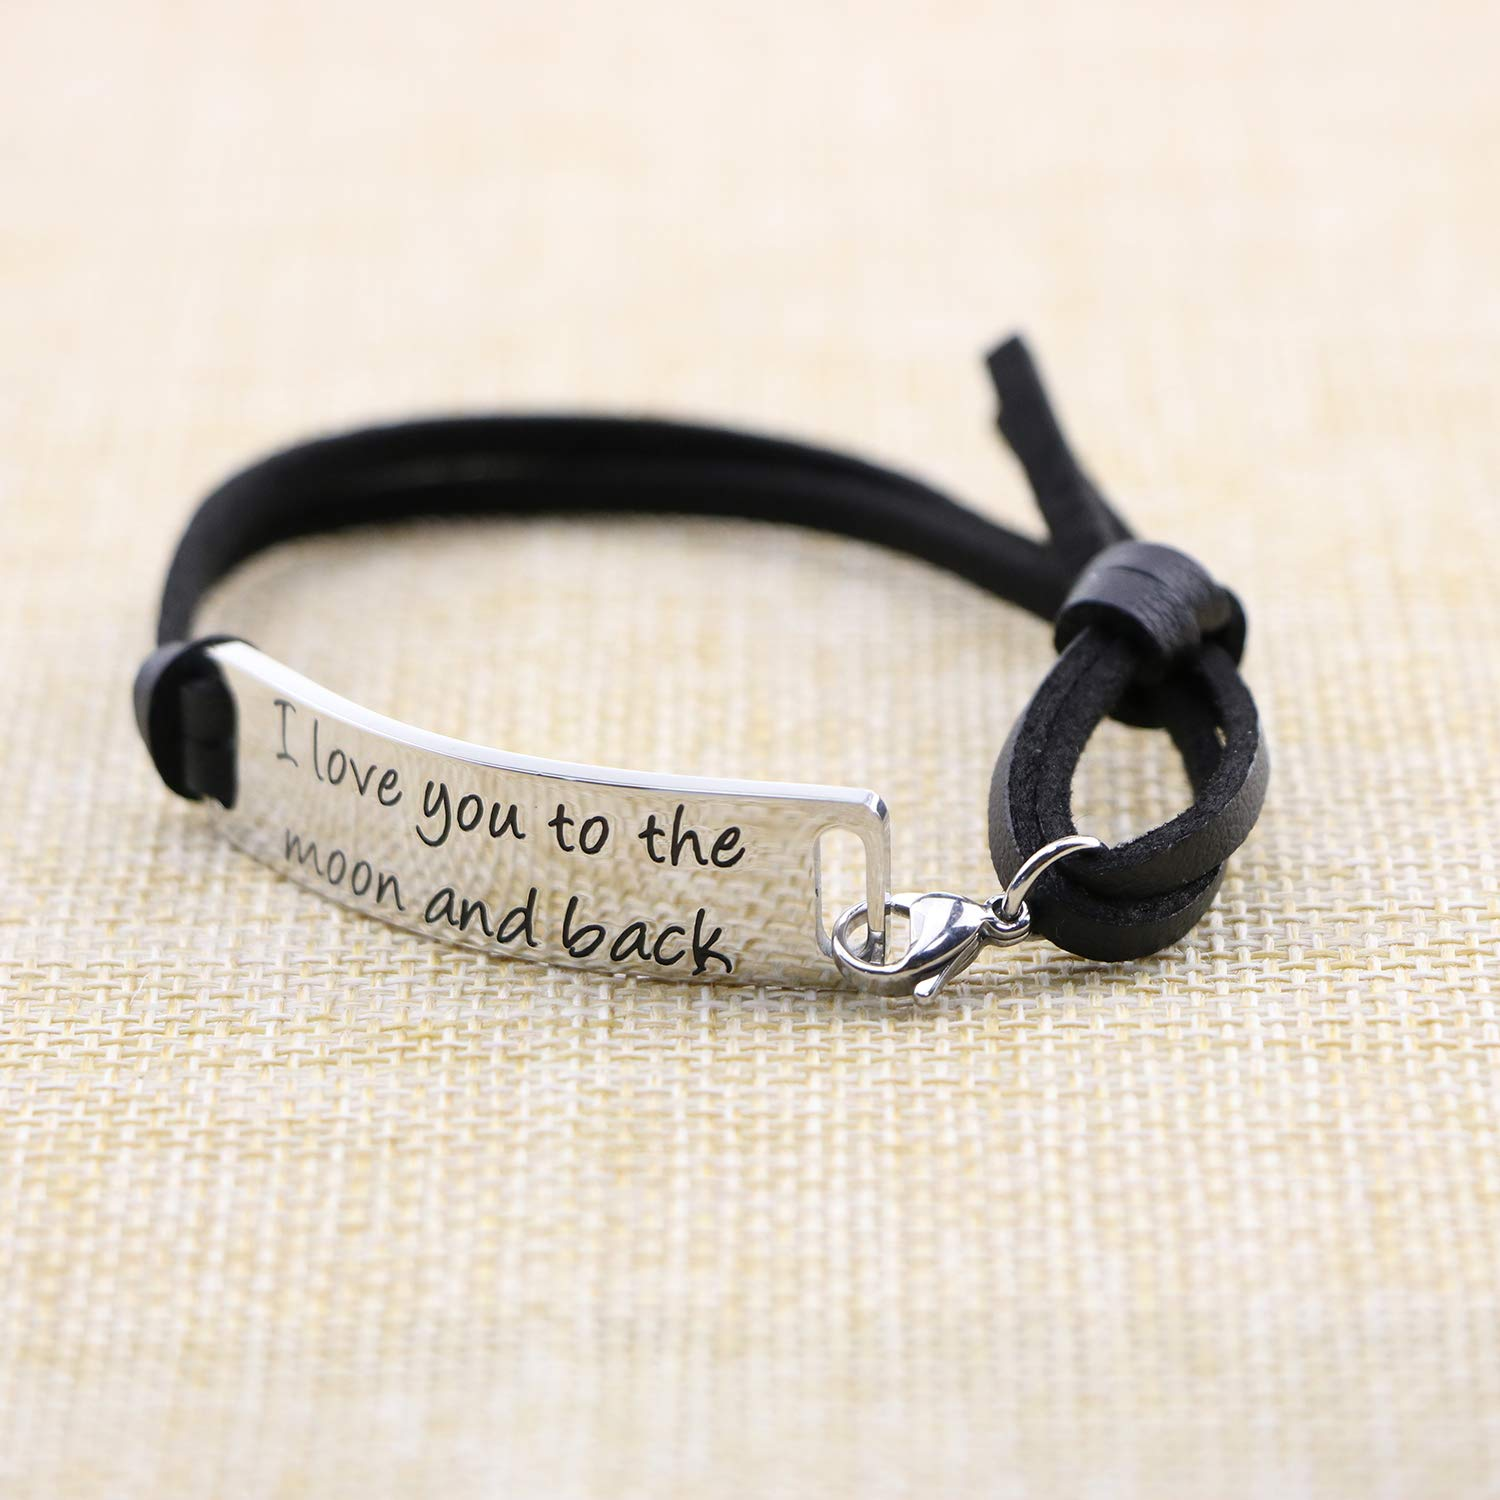 Yiyang Bracelets for Women Inspirational Stainless Steel Bar Wrap Bangle Cuff Personalized Birthday Gifts